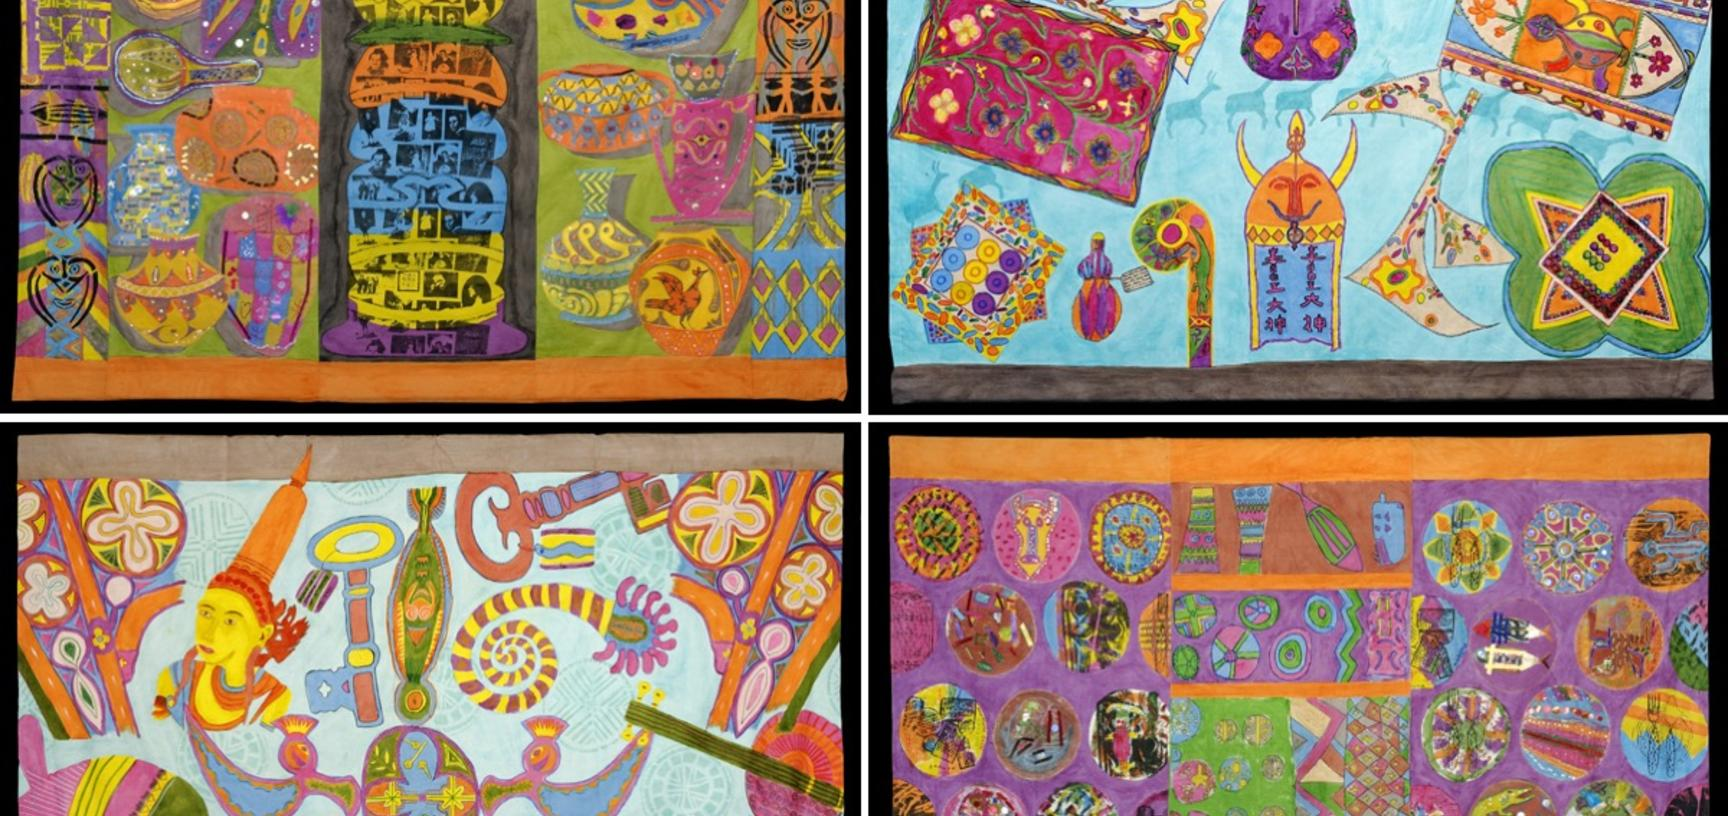 Our 'pop-up museum' tent travelled to festivals and shopping centres across the region. The tent was decorated in these textile panels made by members of art therapy groups tackling homelessness, learning difficulties and mental health.